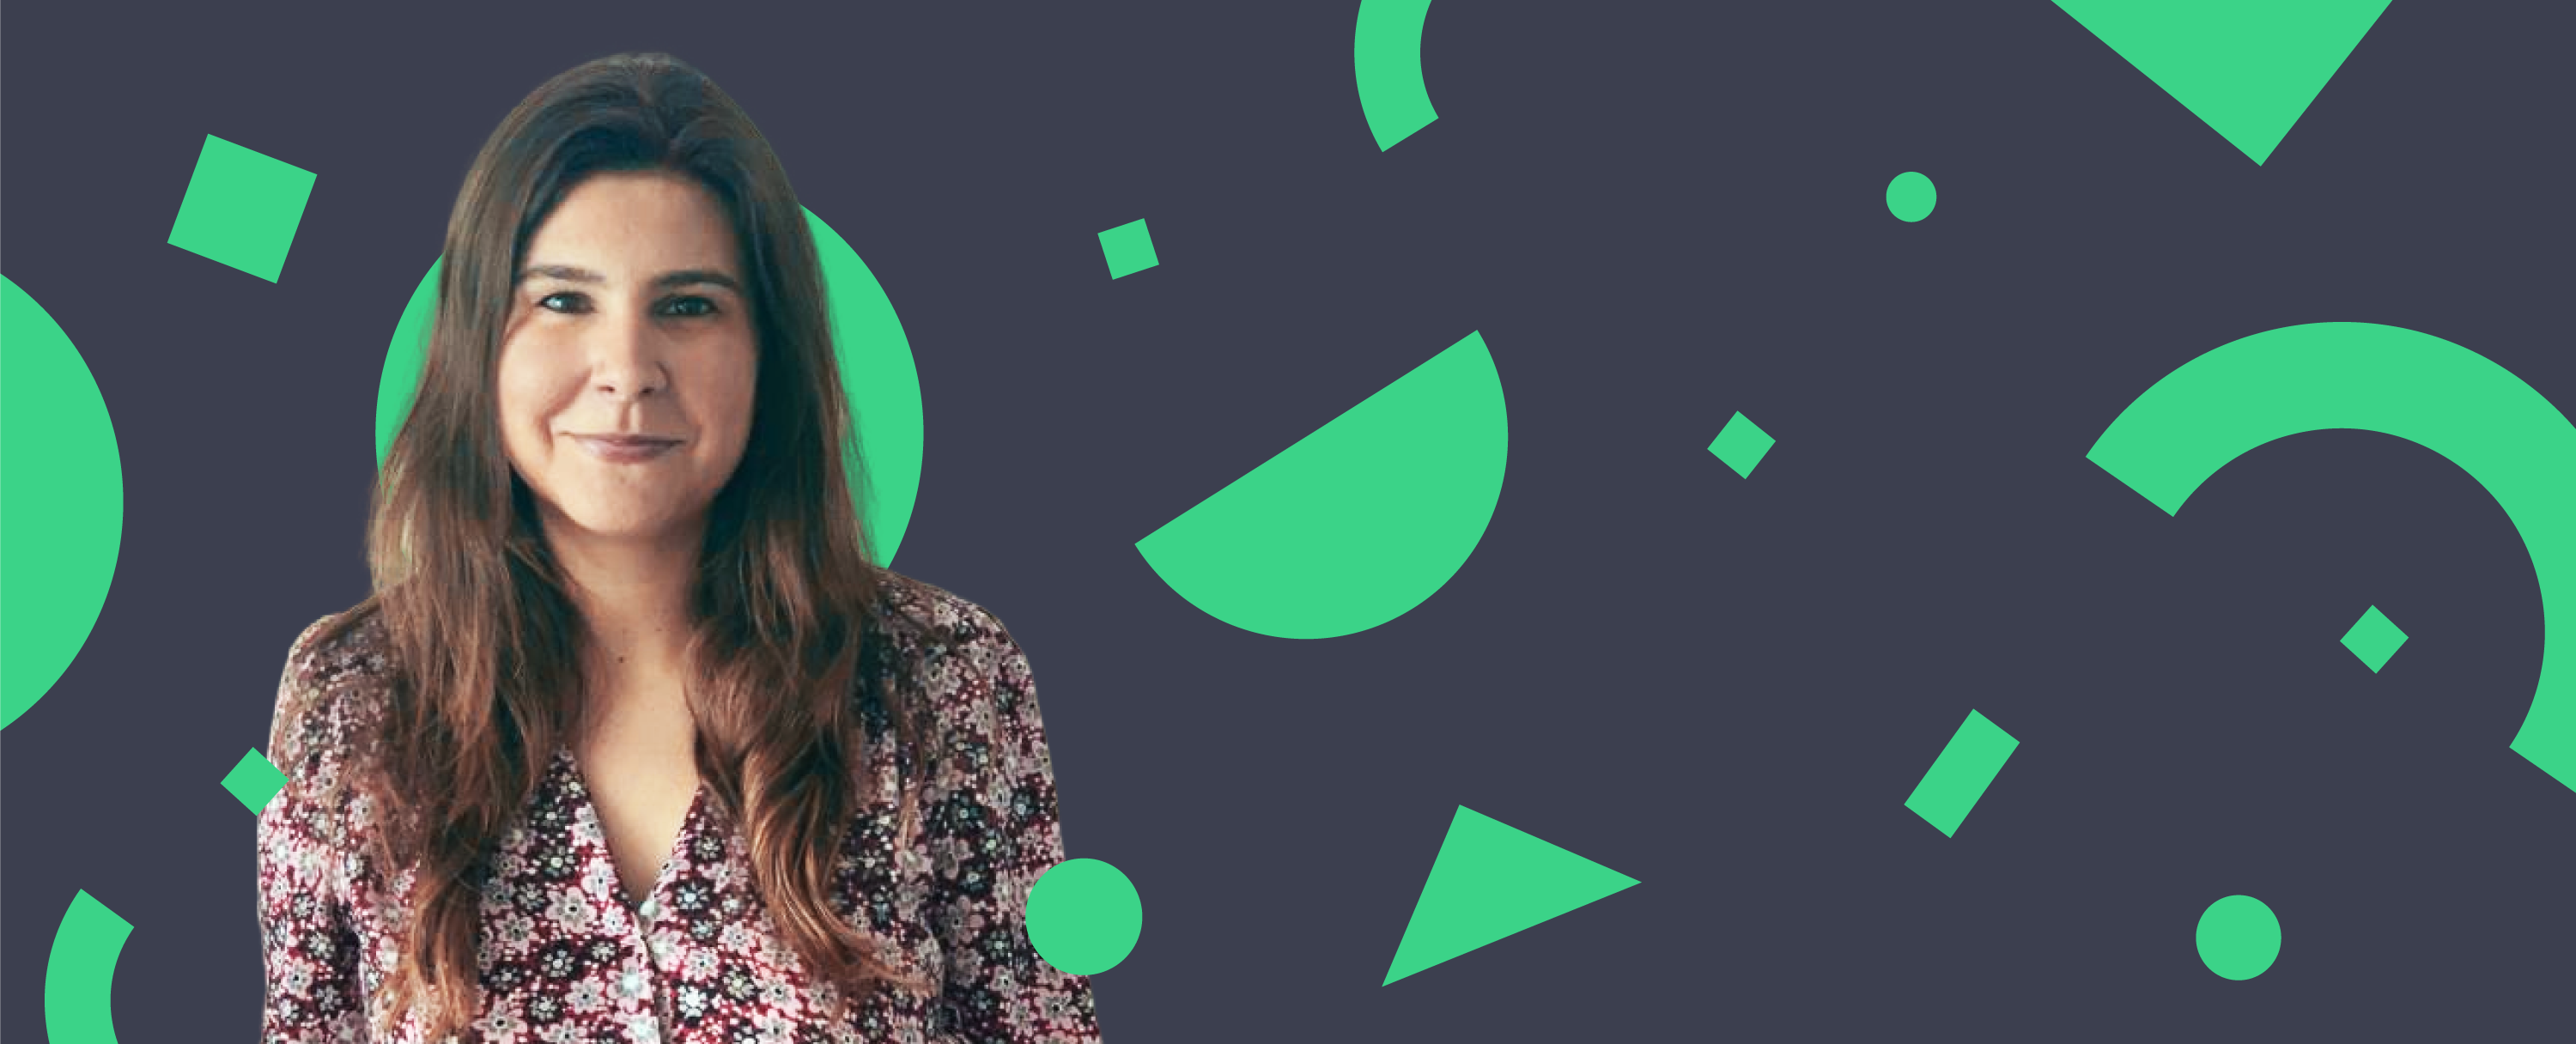 Kristin Lorie — on Social Media in Pandemics, Disrupting Brands, and Little Life-Changing Events